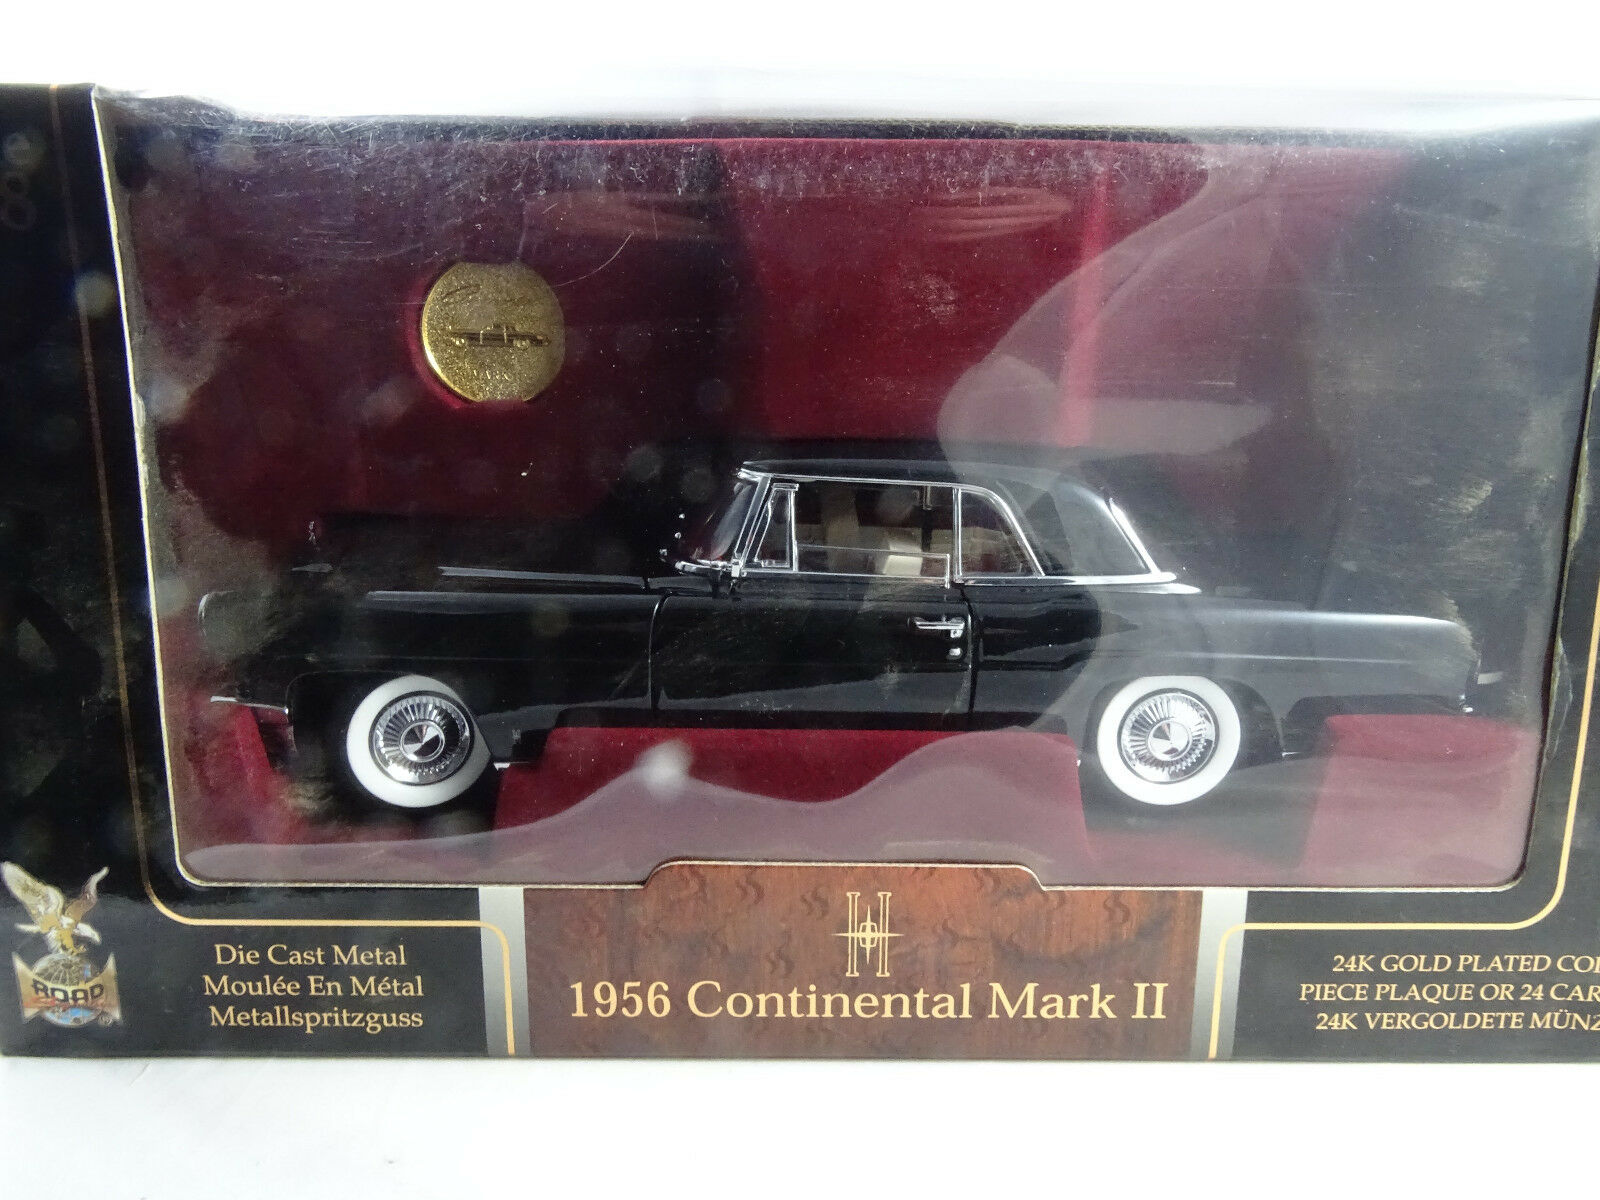 1 18 Road Signature 1956 continental mark ii nero +24k brazaletes moneda rareza